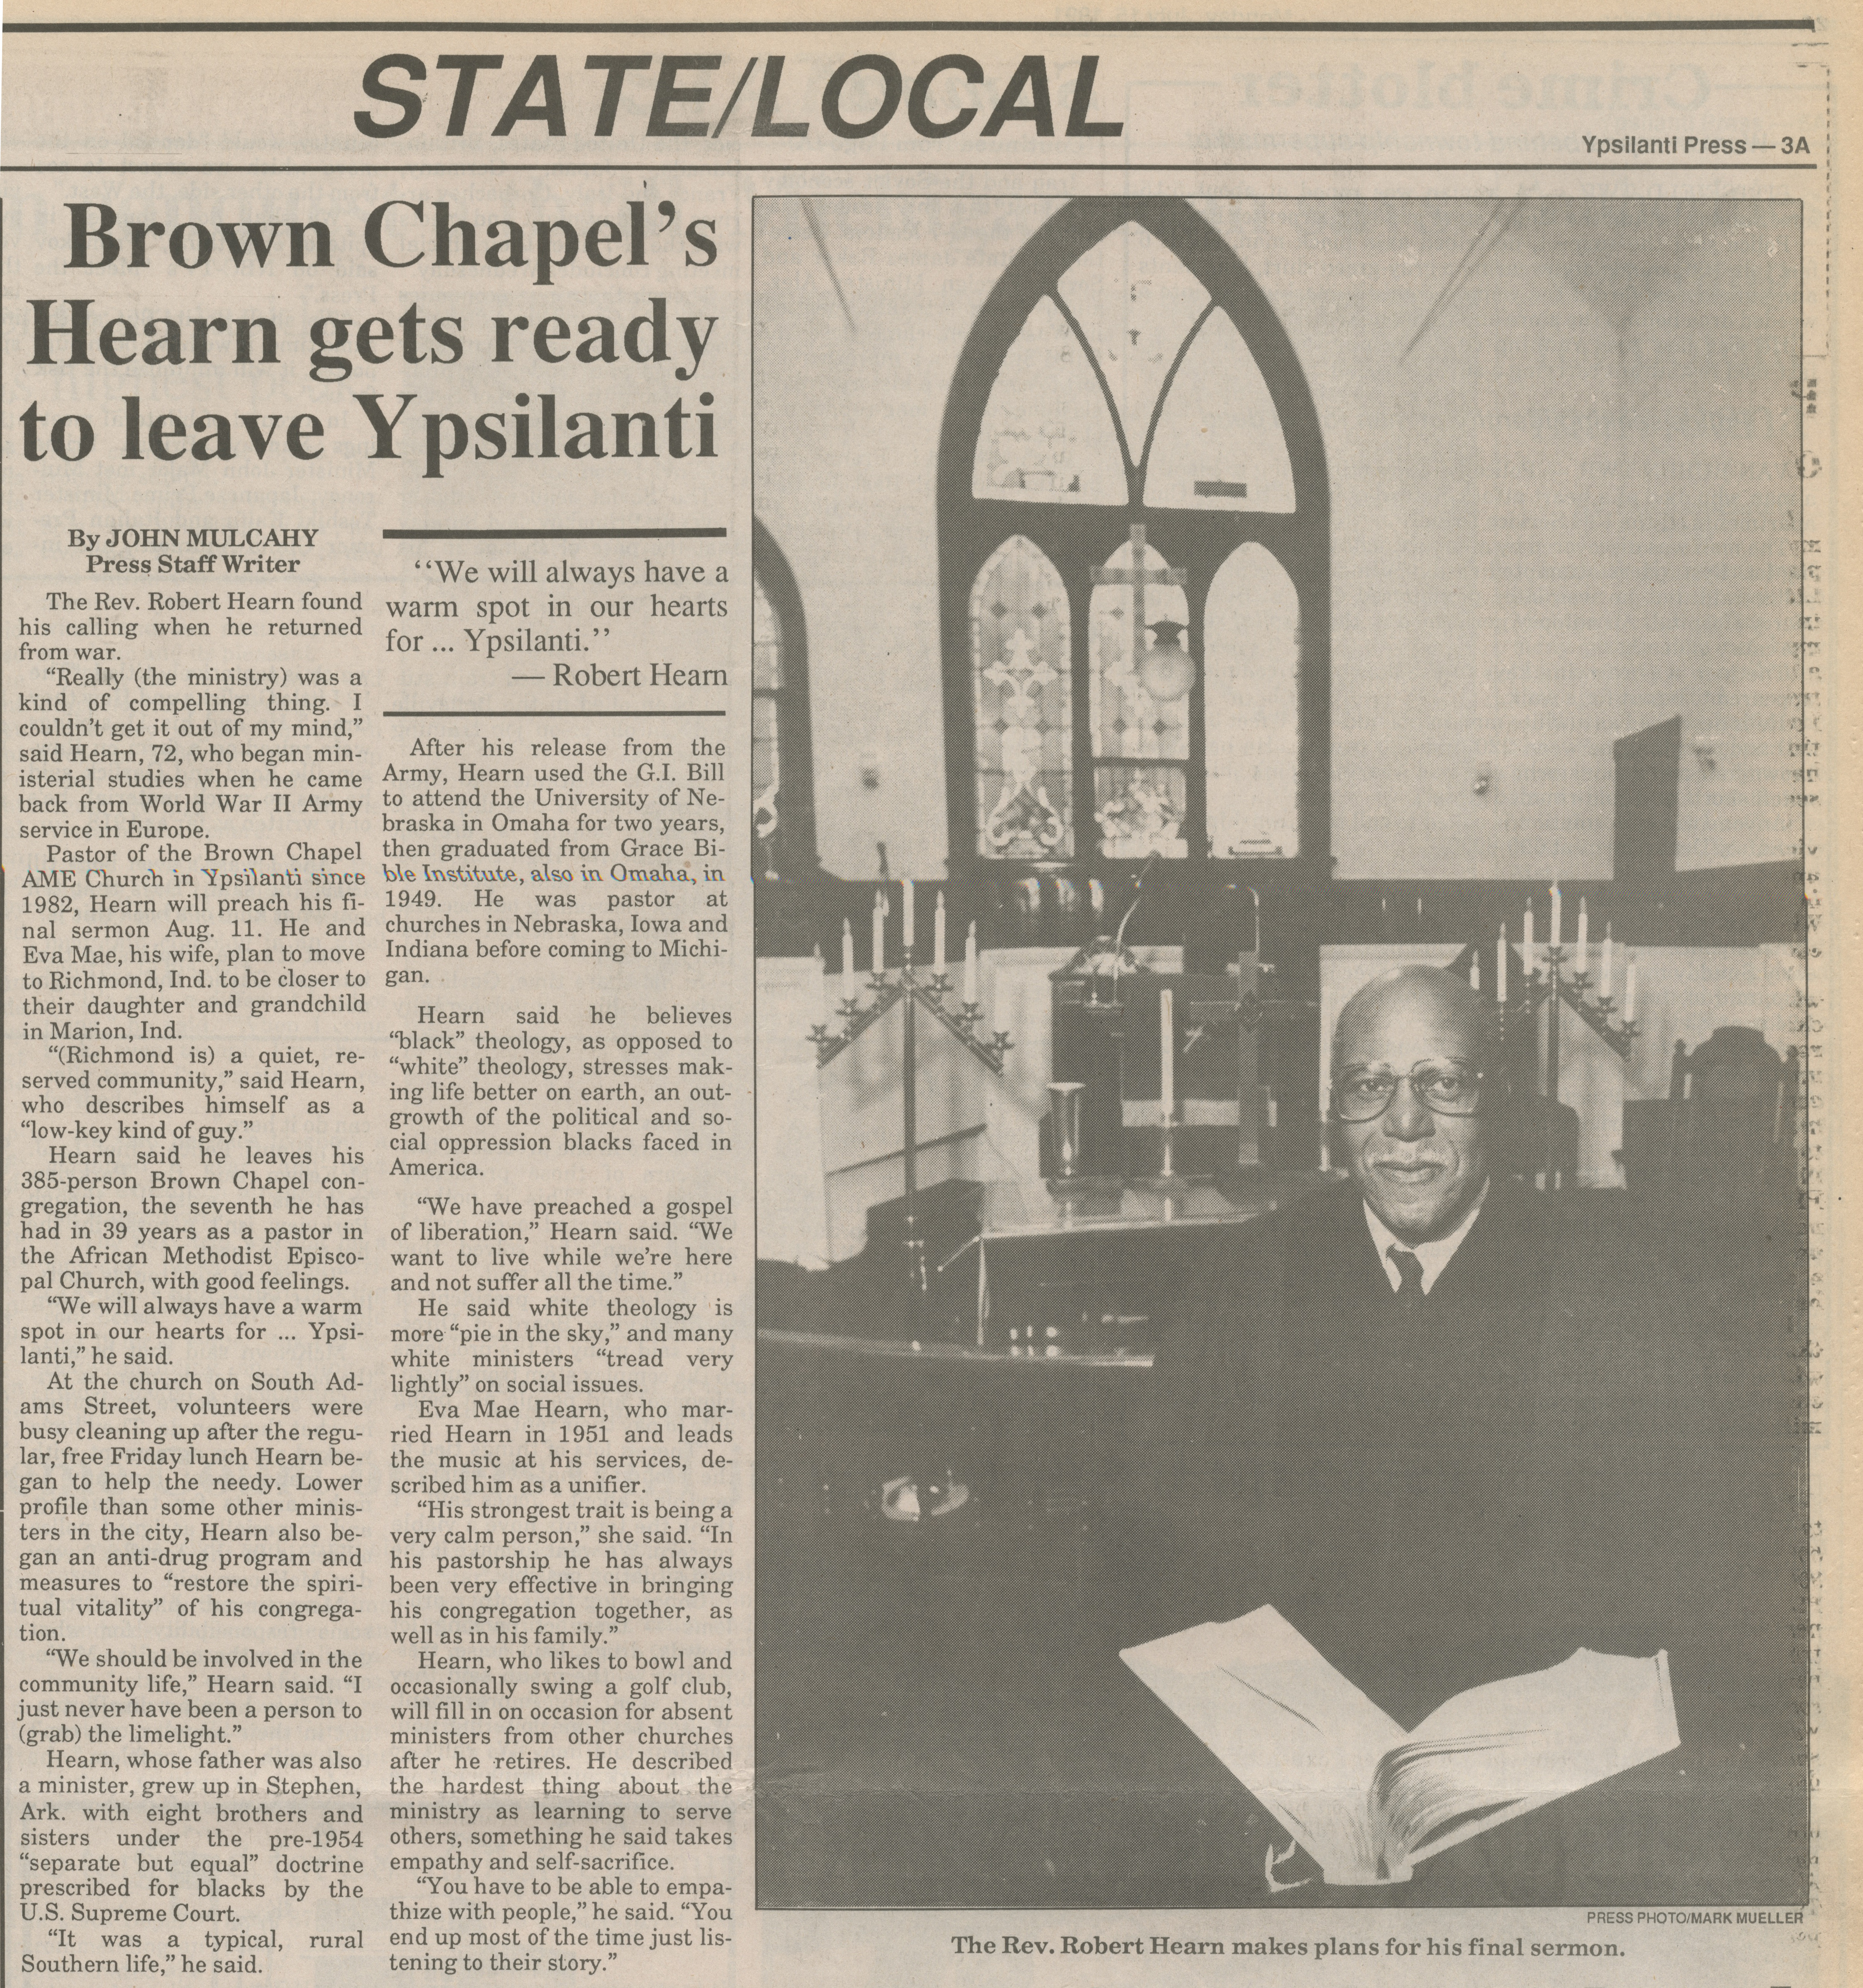 Brown Chapel's Hearn Gets Ready To Leave Ypsilanti image